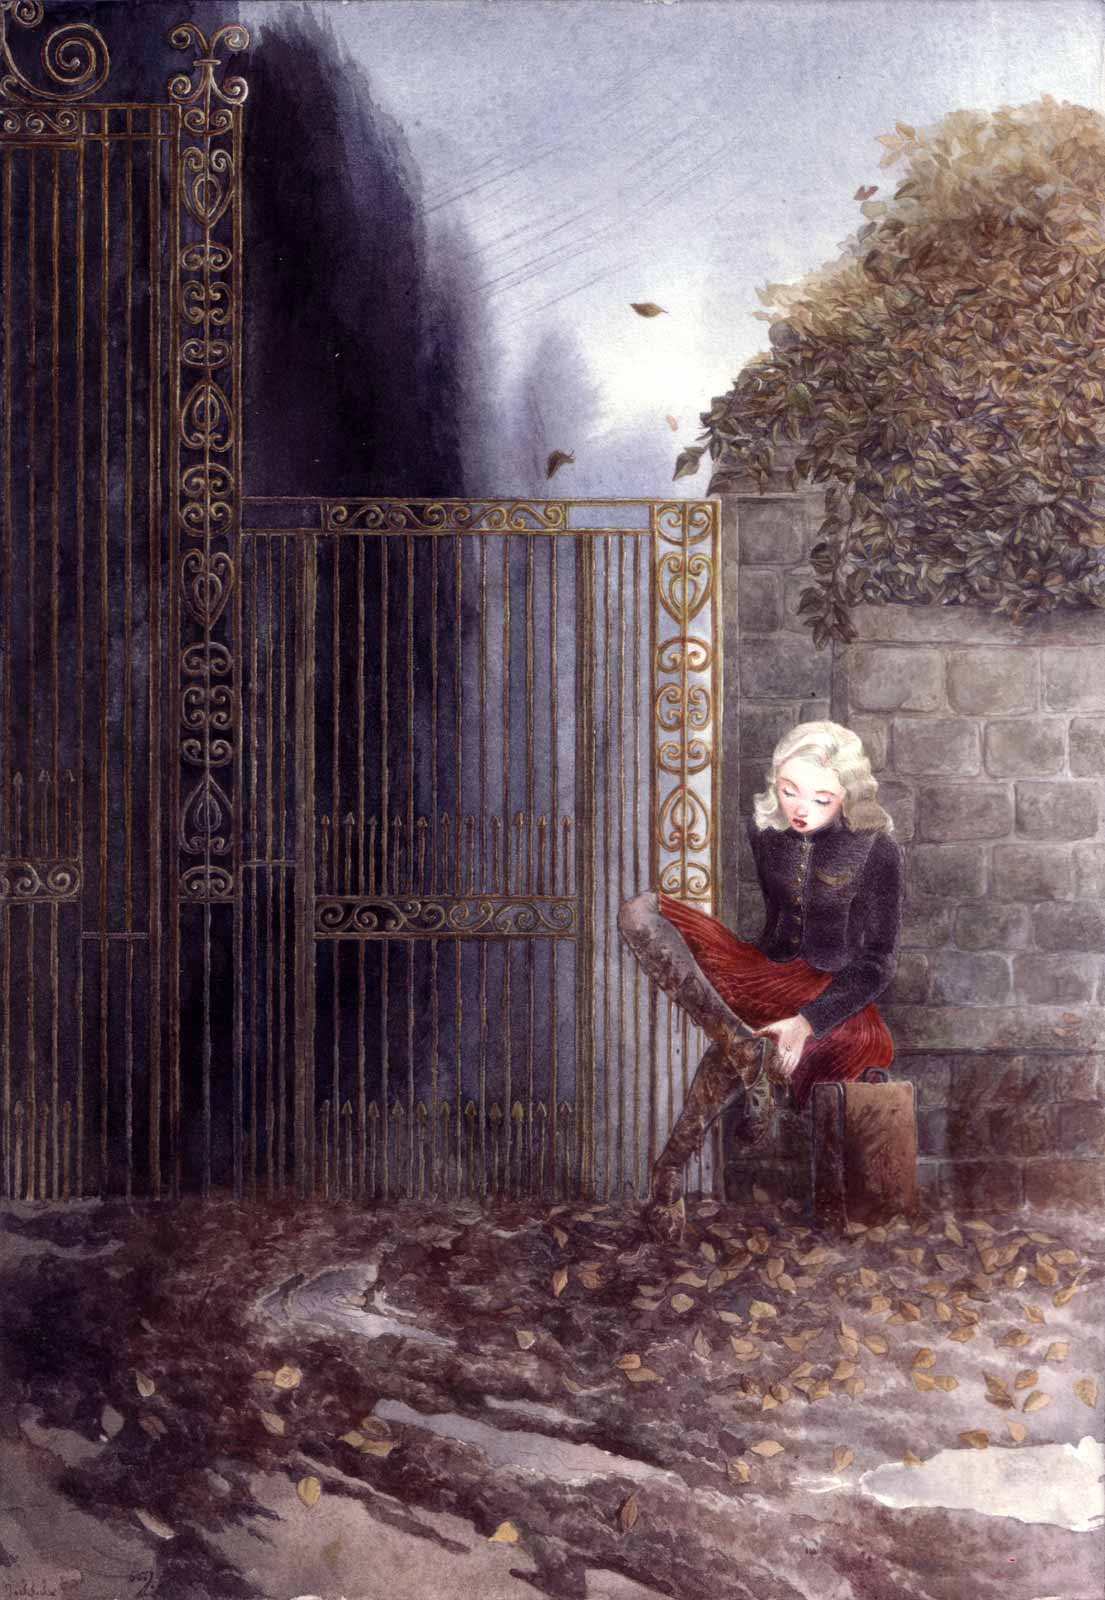 1940s, a muddy winter day, a woman in a red velvet skirt is sitting outside the iron gate of a big mansion with her suitcase.